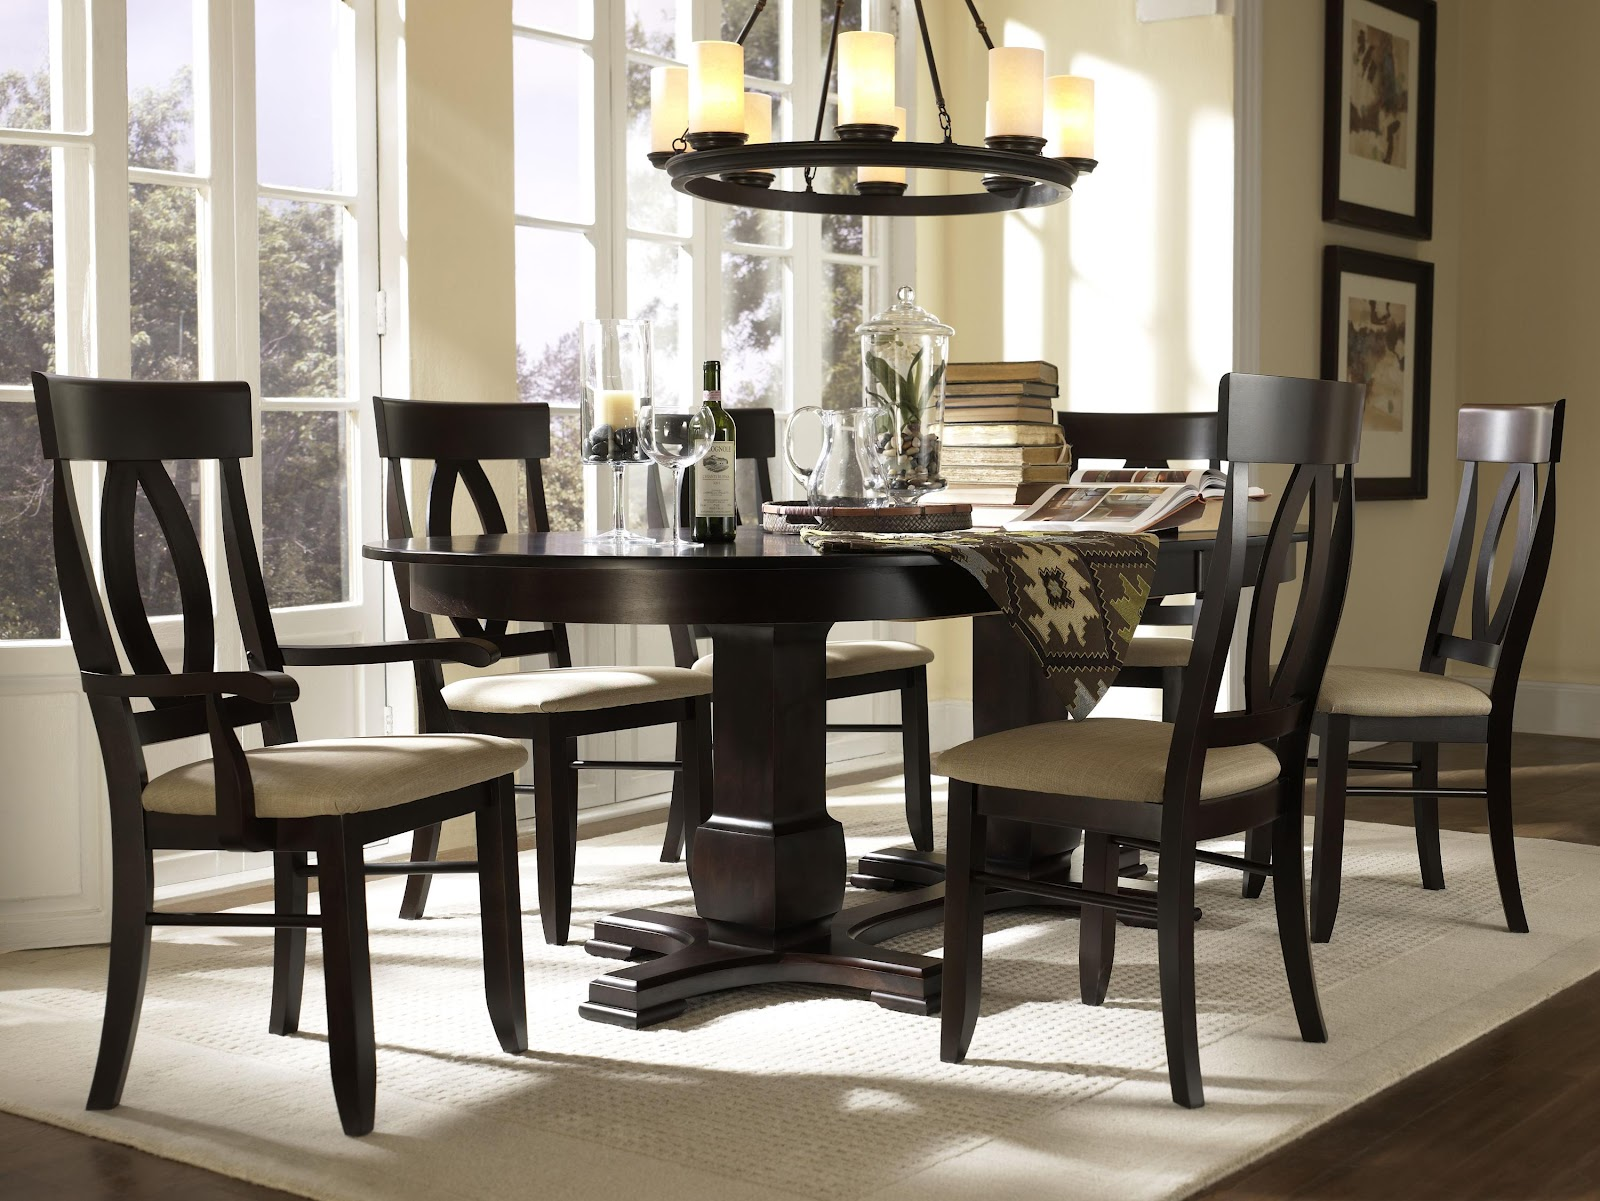 Unusual Dining Sets Canadel Furniture Long Island New York Ny Dining Room